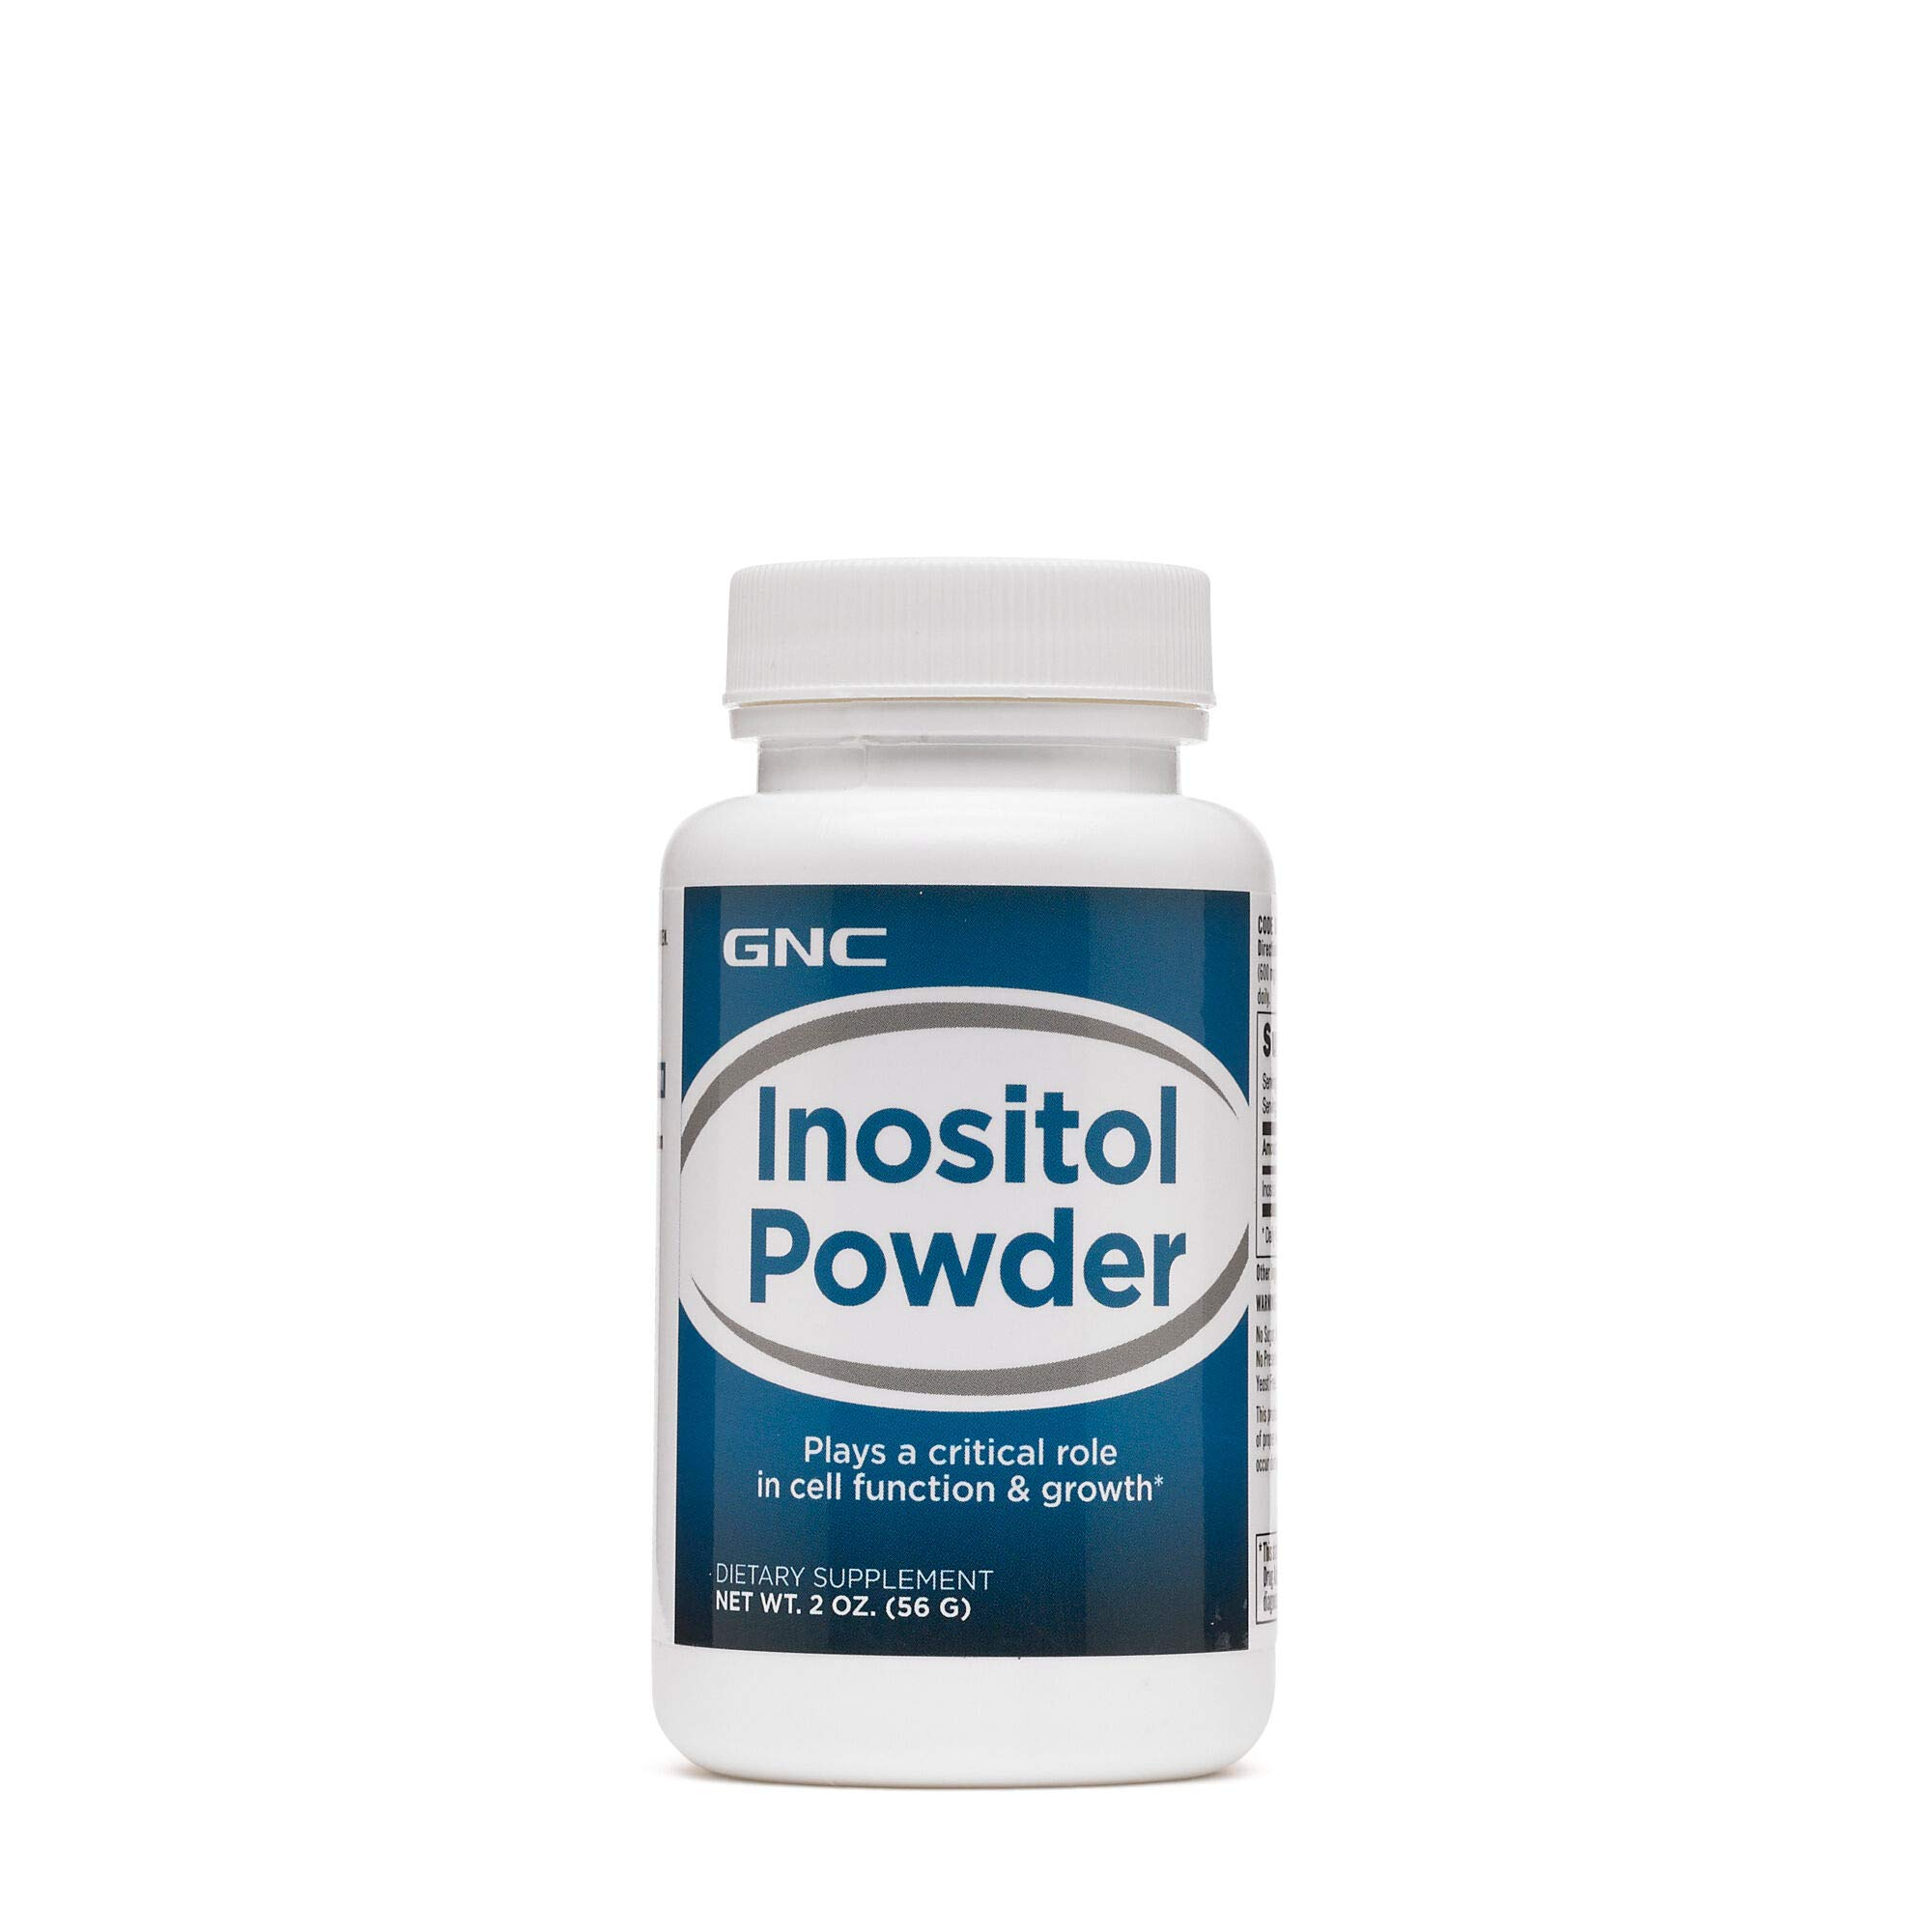 GNC Inositol Powder, 93 Servings by GNC